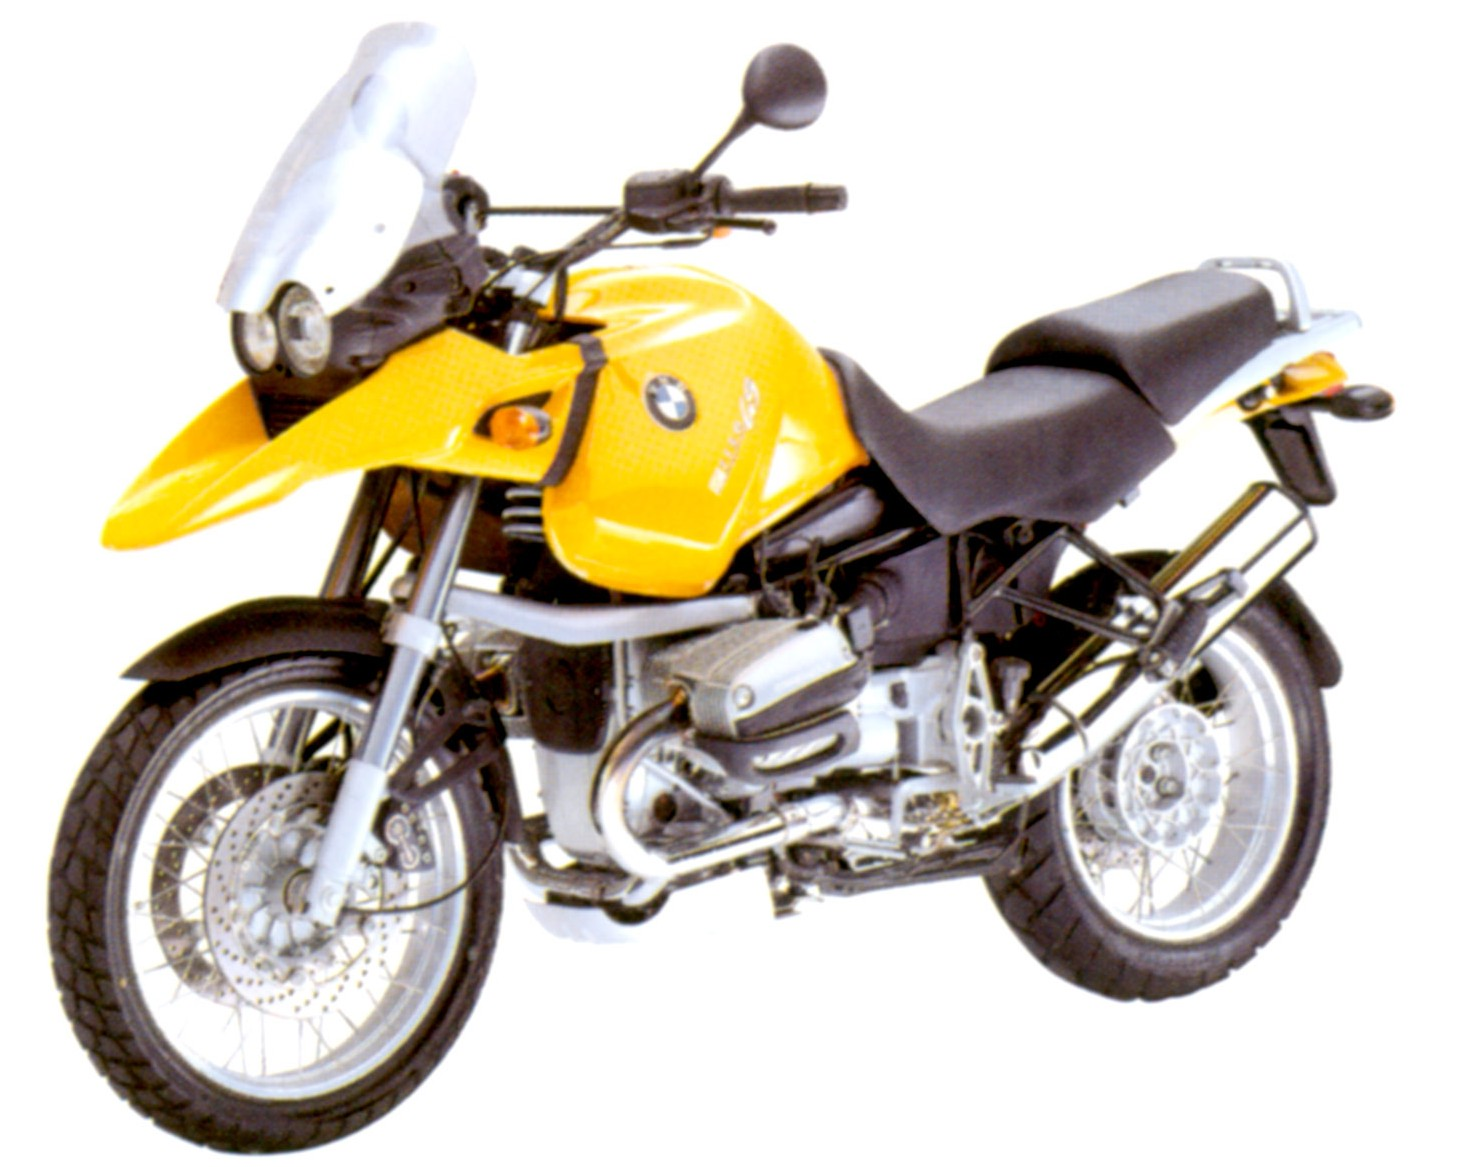 BMW R 1150GS technical specifications